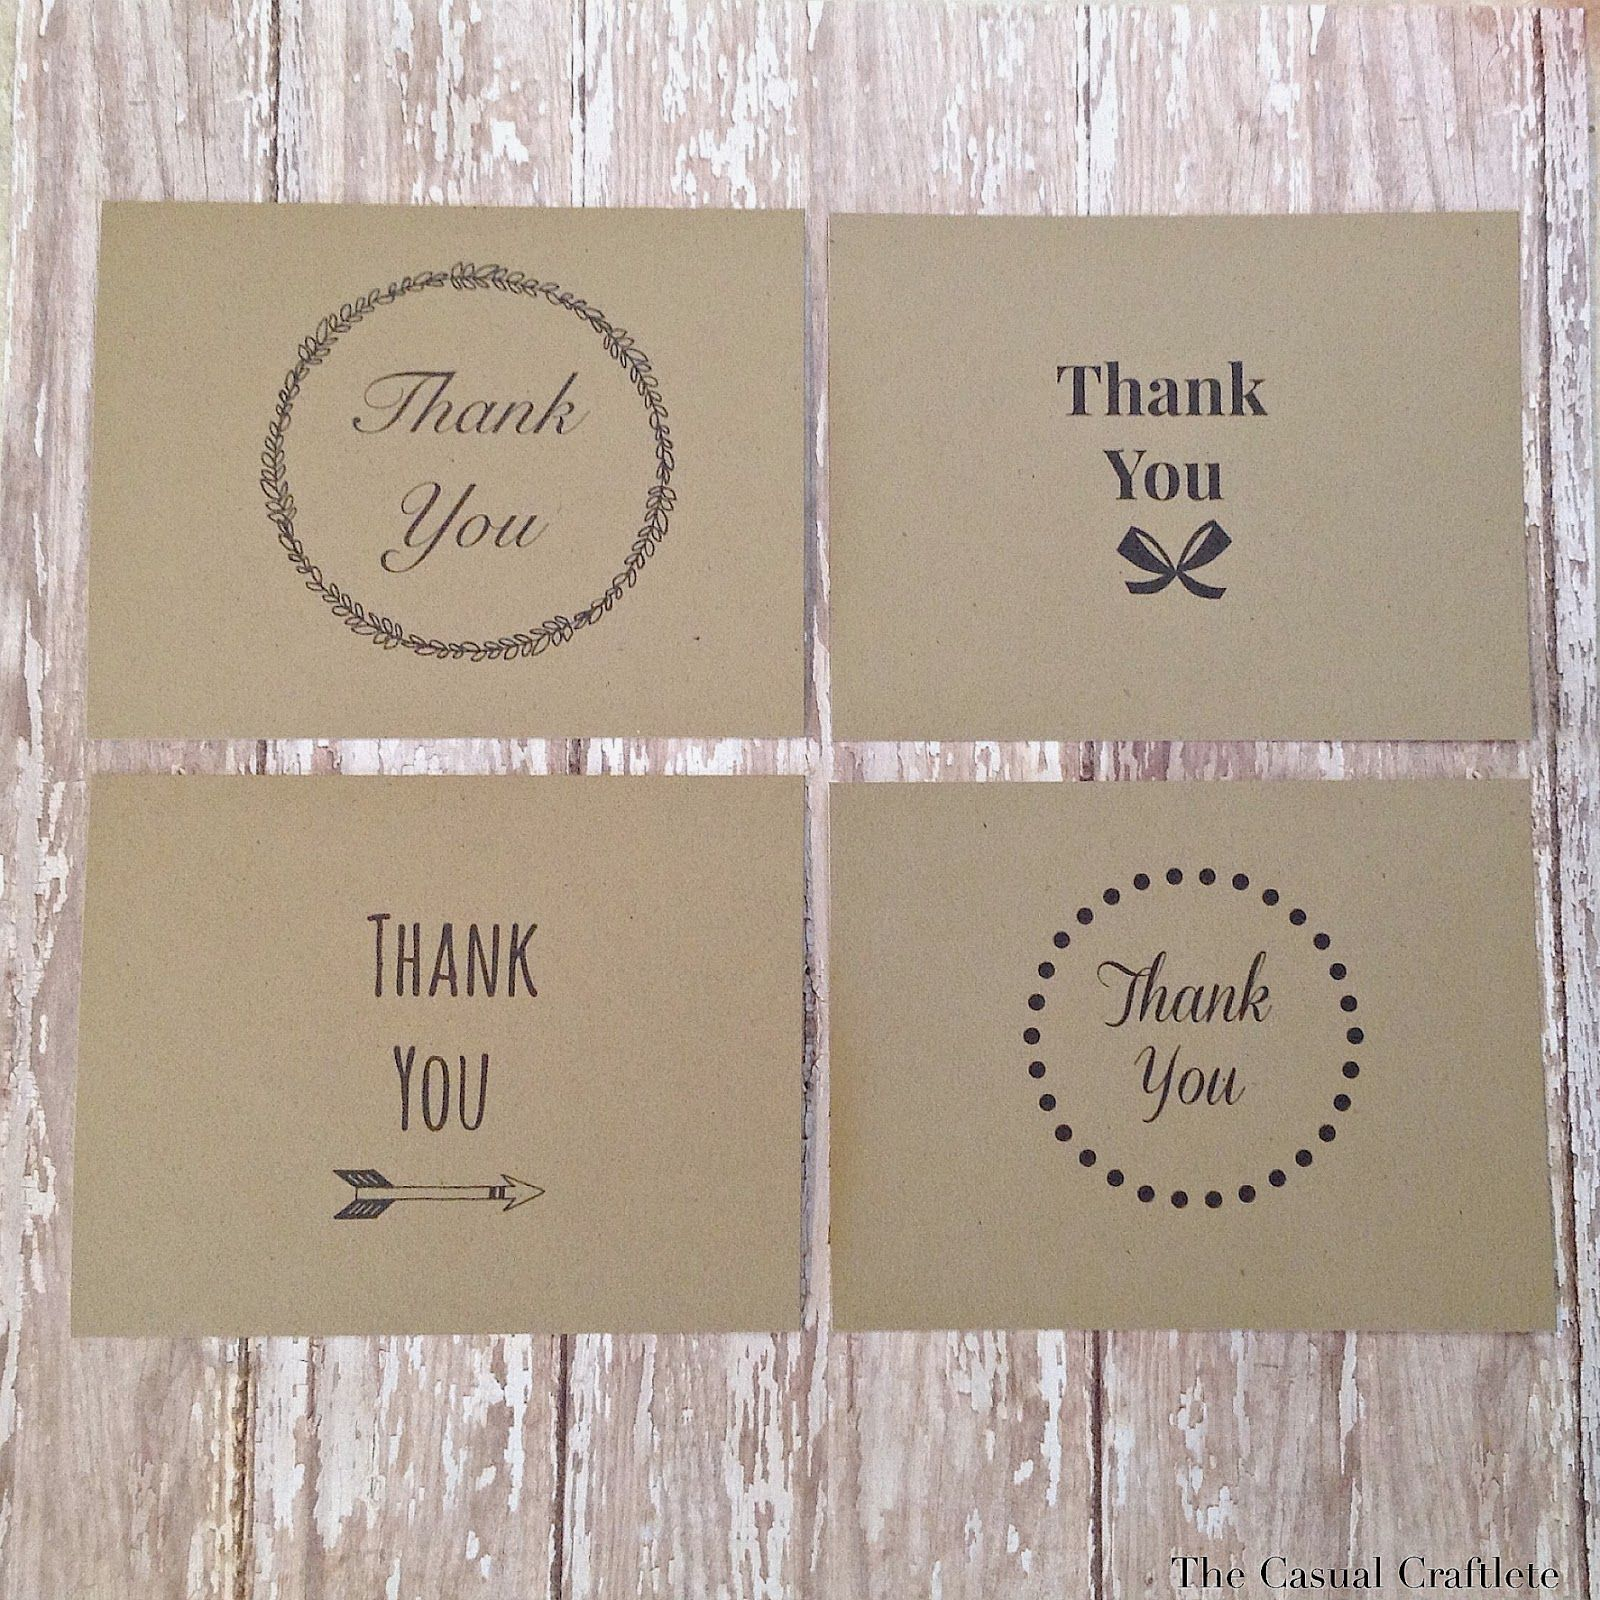 Daft Crafts free printable thank you cards  Crafting  Pinterest